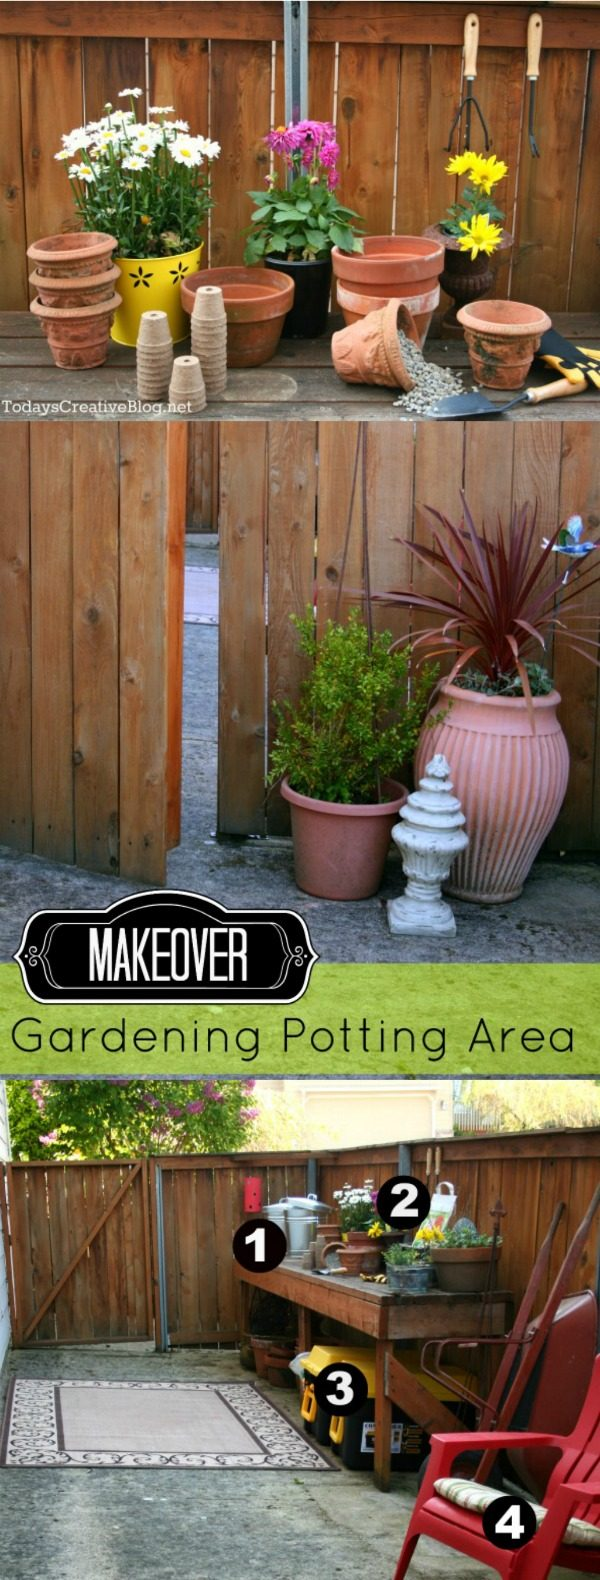 Planting Area - Potting Bench | Create a special place for your gardening and potting needs. See how I put together a simple potting table to keep it all in one place. TodaysCreativeLife.com